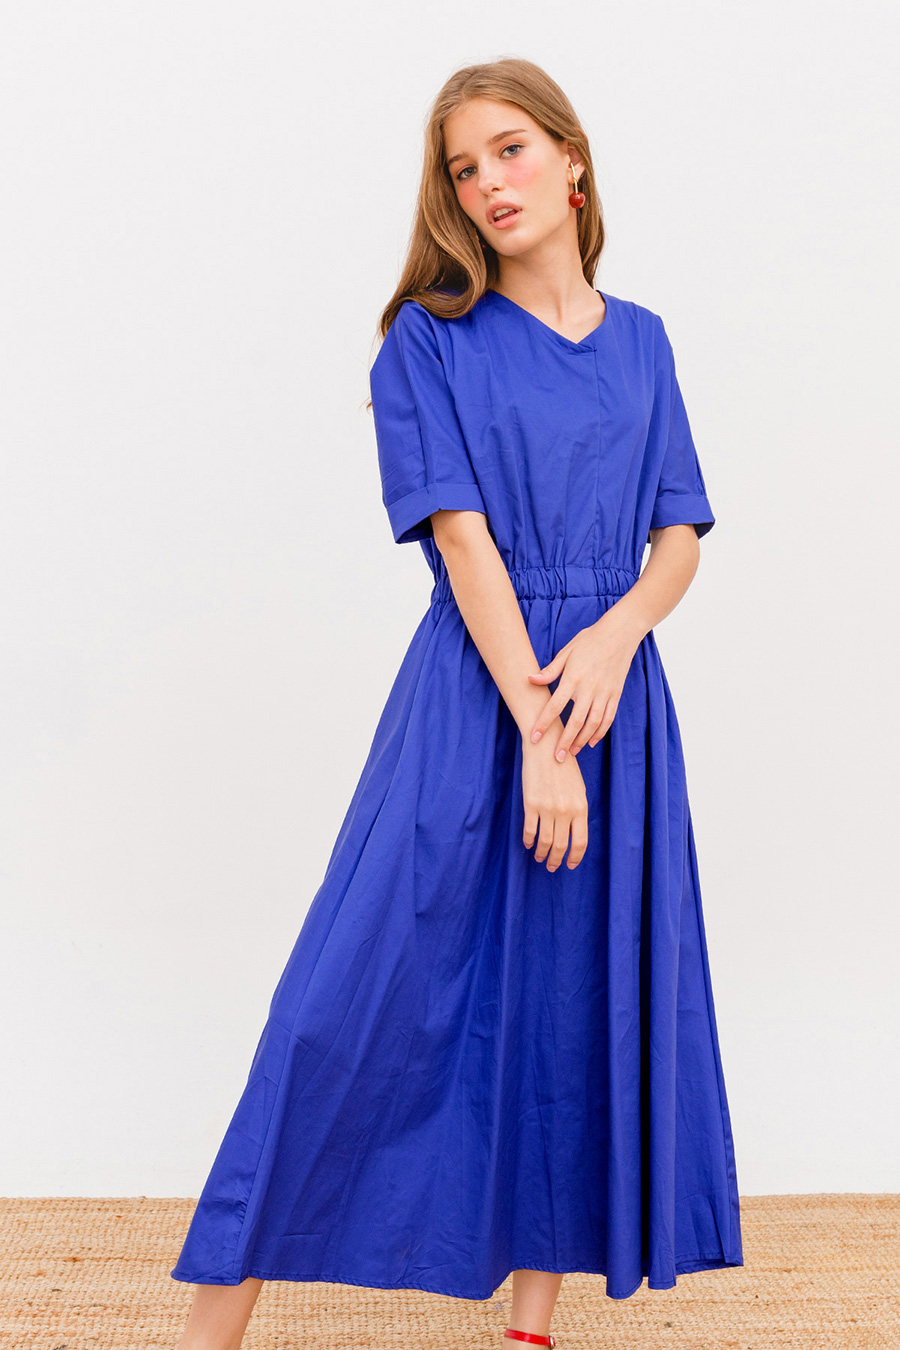 AOI MIDI DRESS - COBALT